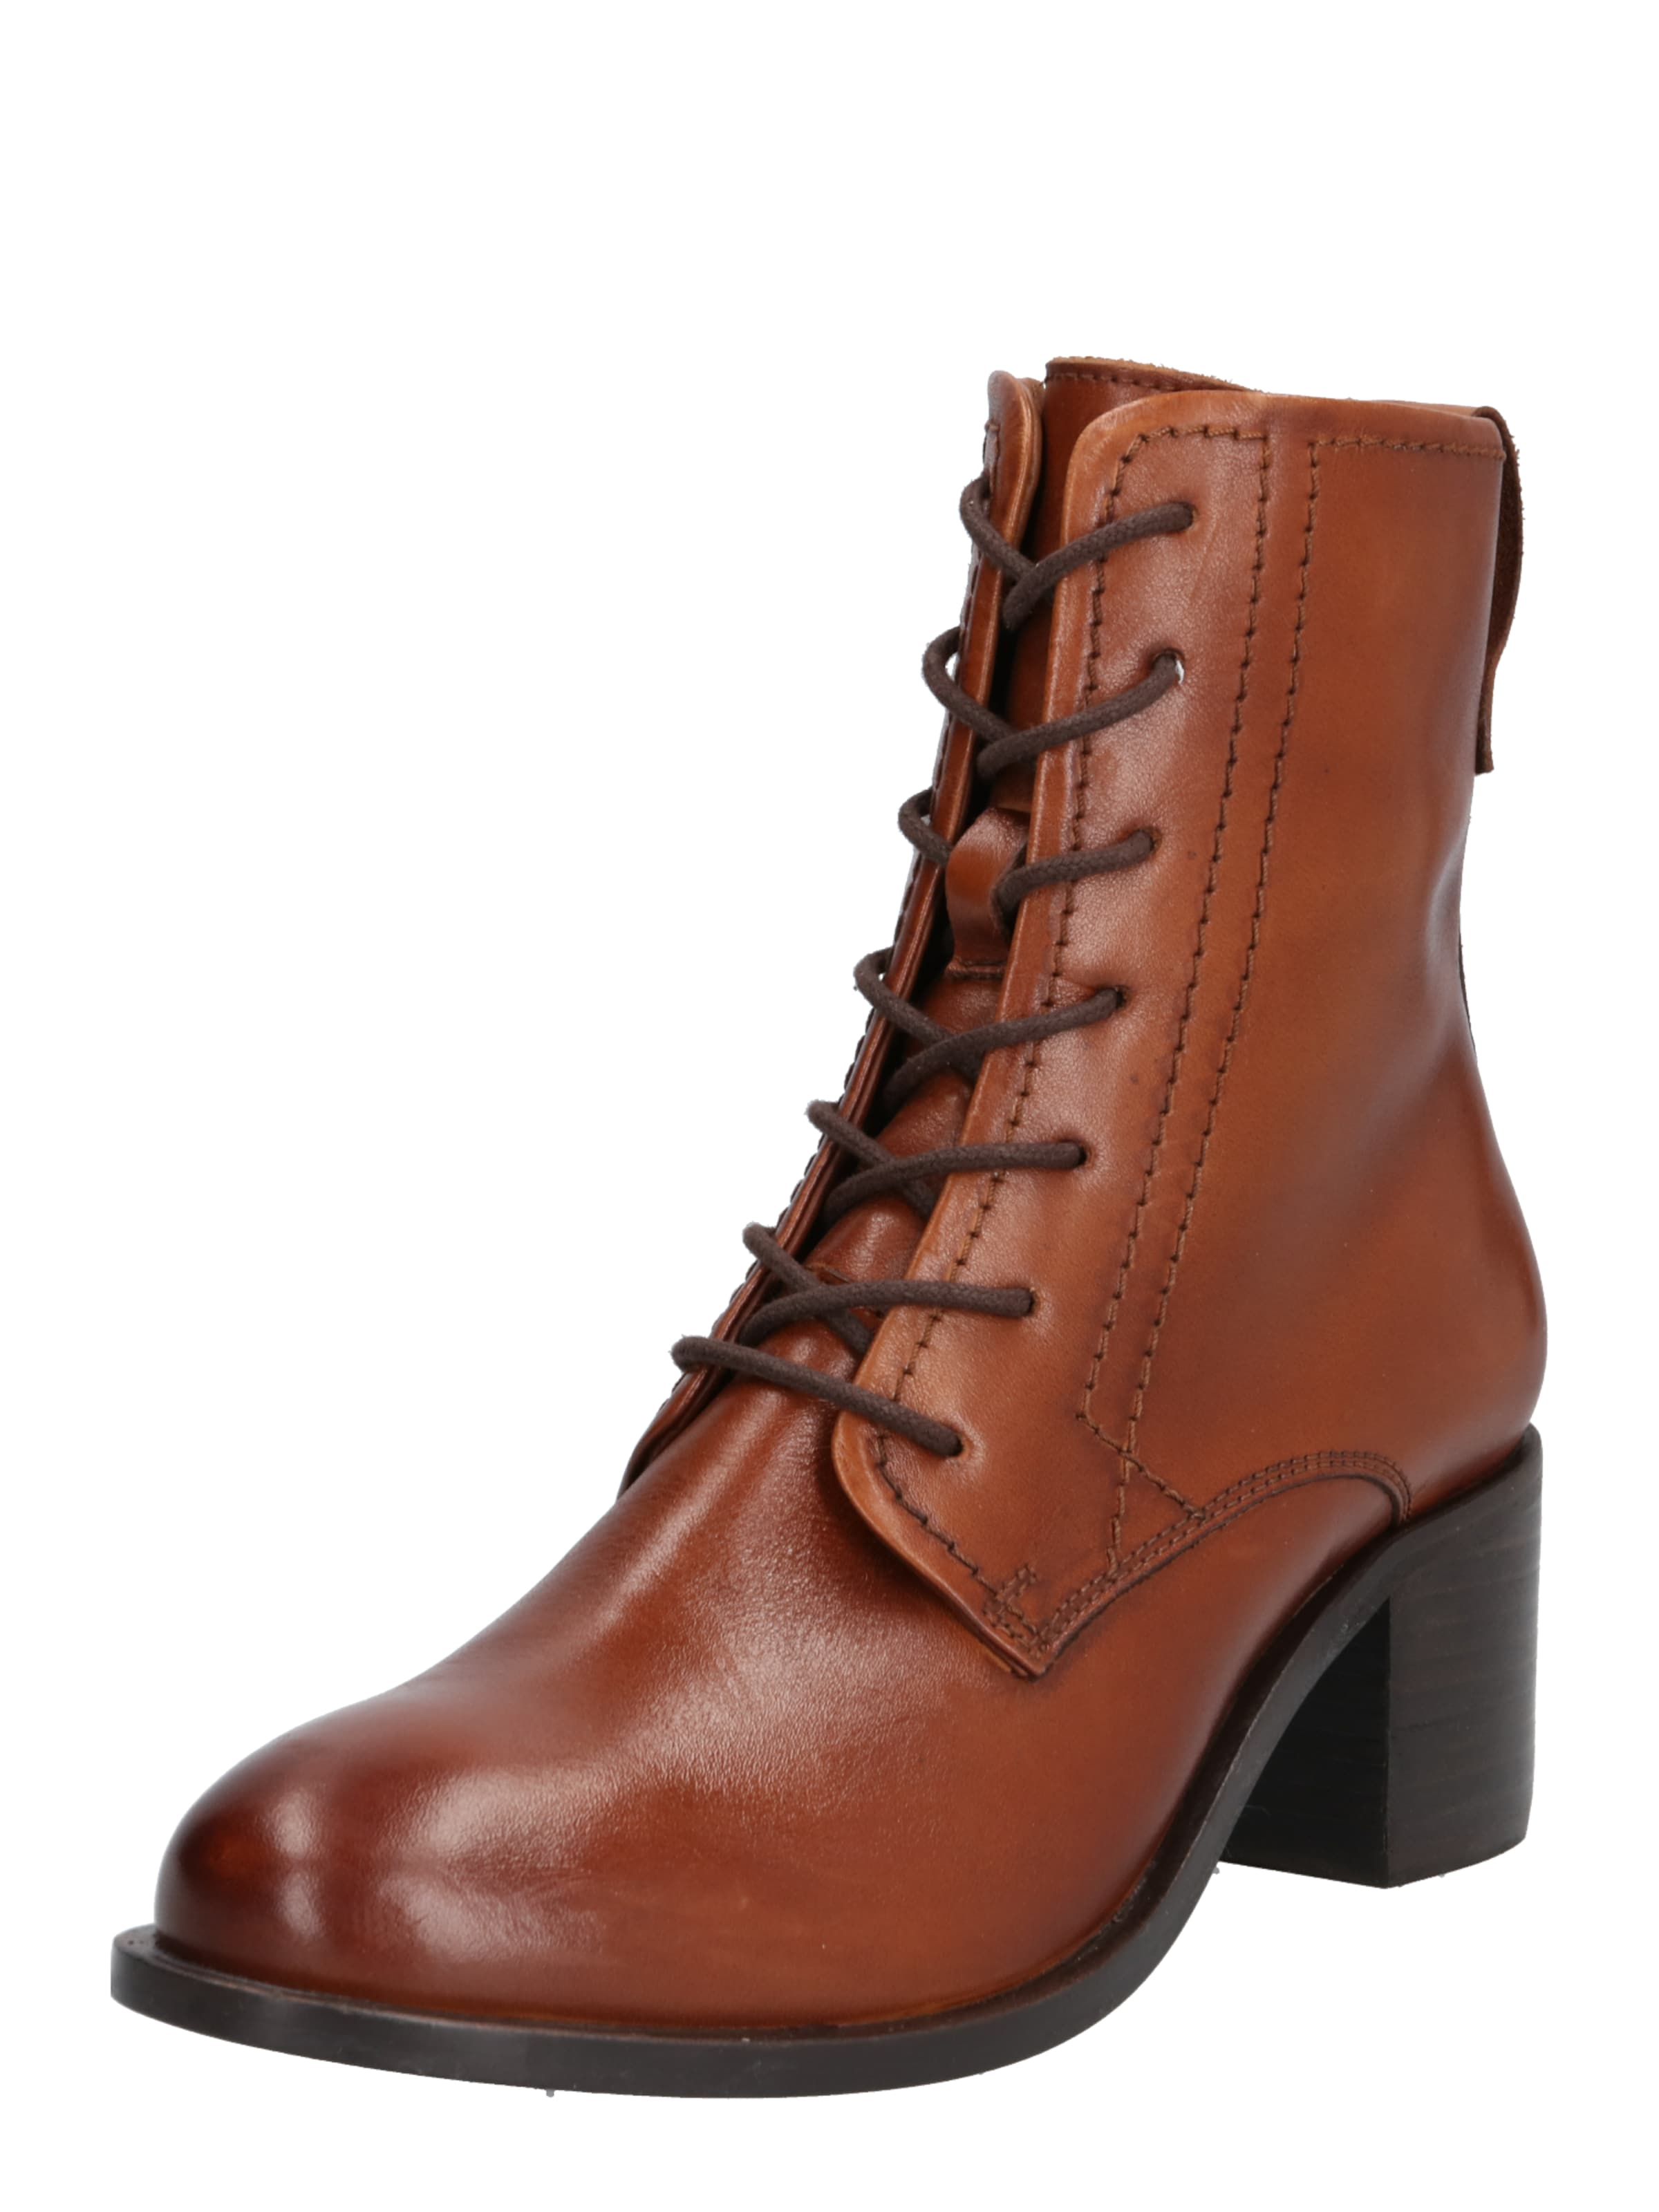 ABOUT YOU Stiefelette 'Jona' in cognac